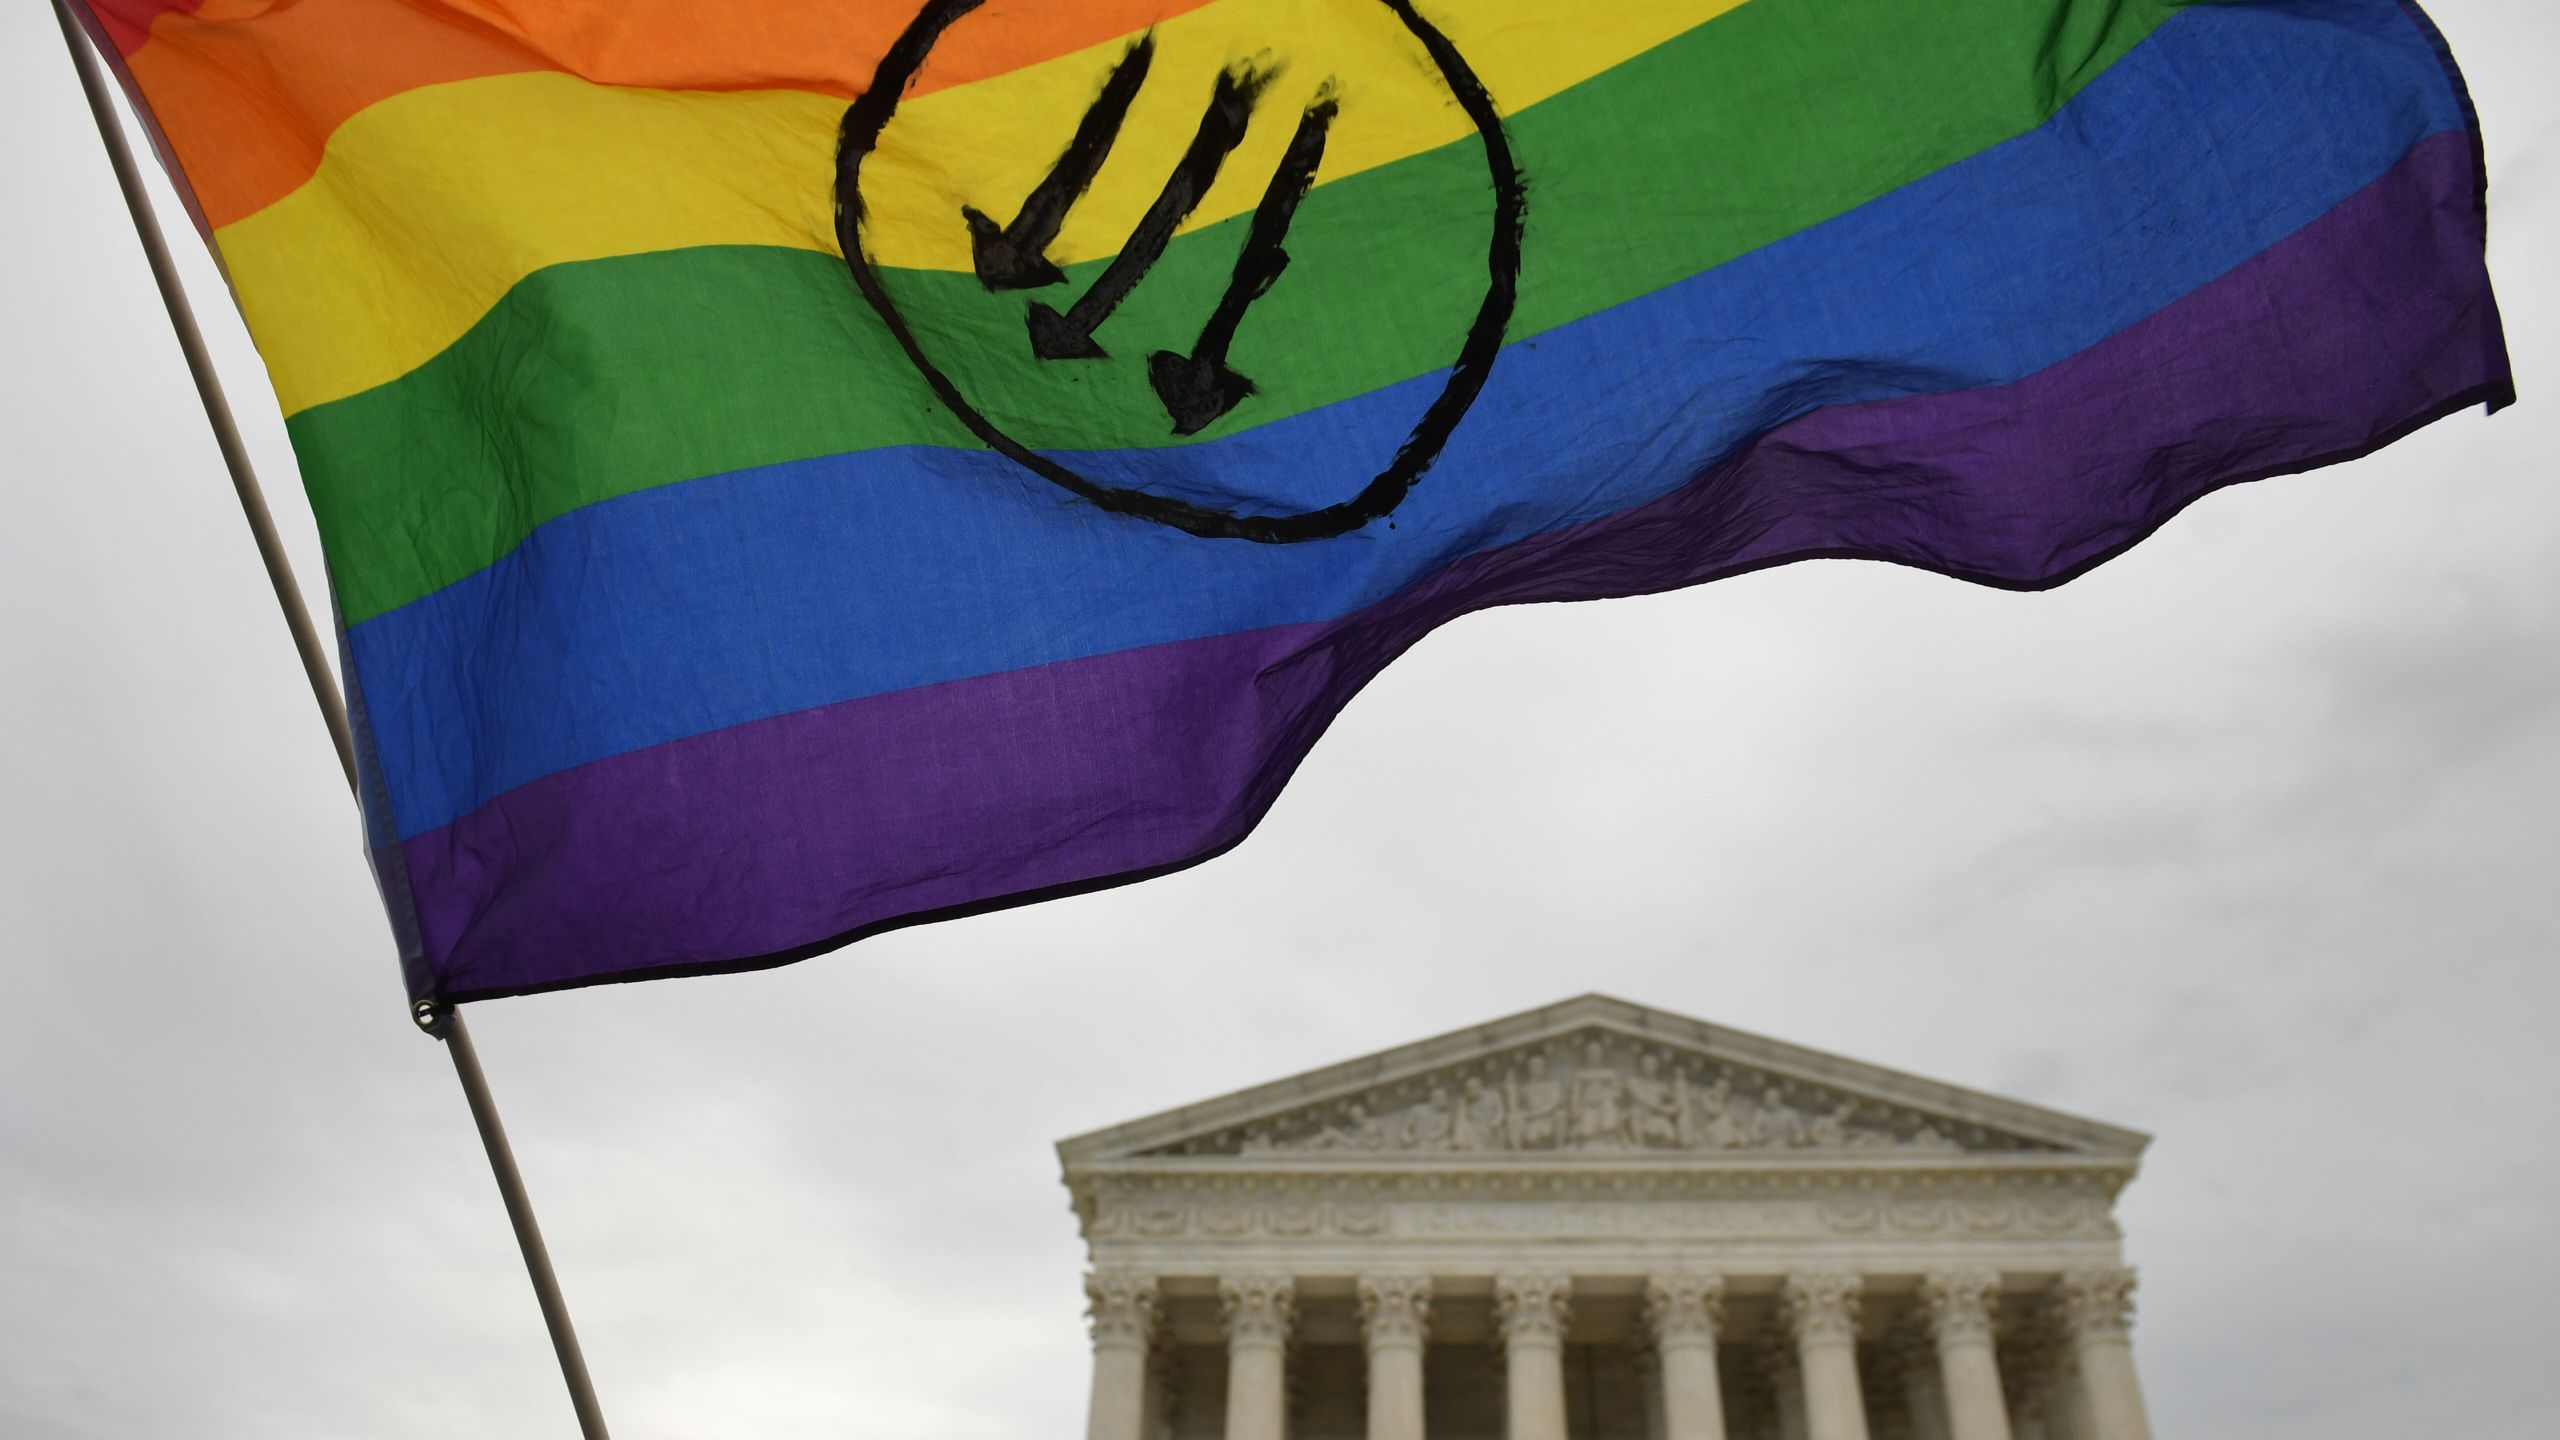 Demonstrators hold up a rainbow flag at an LGBT rights rally outside the U.S. Supreme Court in Washington, D.C., on Oct. 8, 2019, as the court holds oral arguments in cases dealing with workplace discrimination based on sexual orientation. (Credit: SAUL LOEB/AFP via Getty Images)